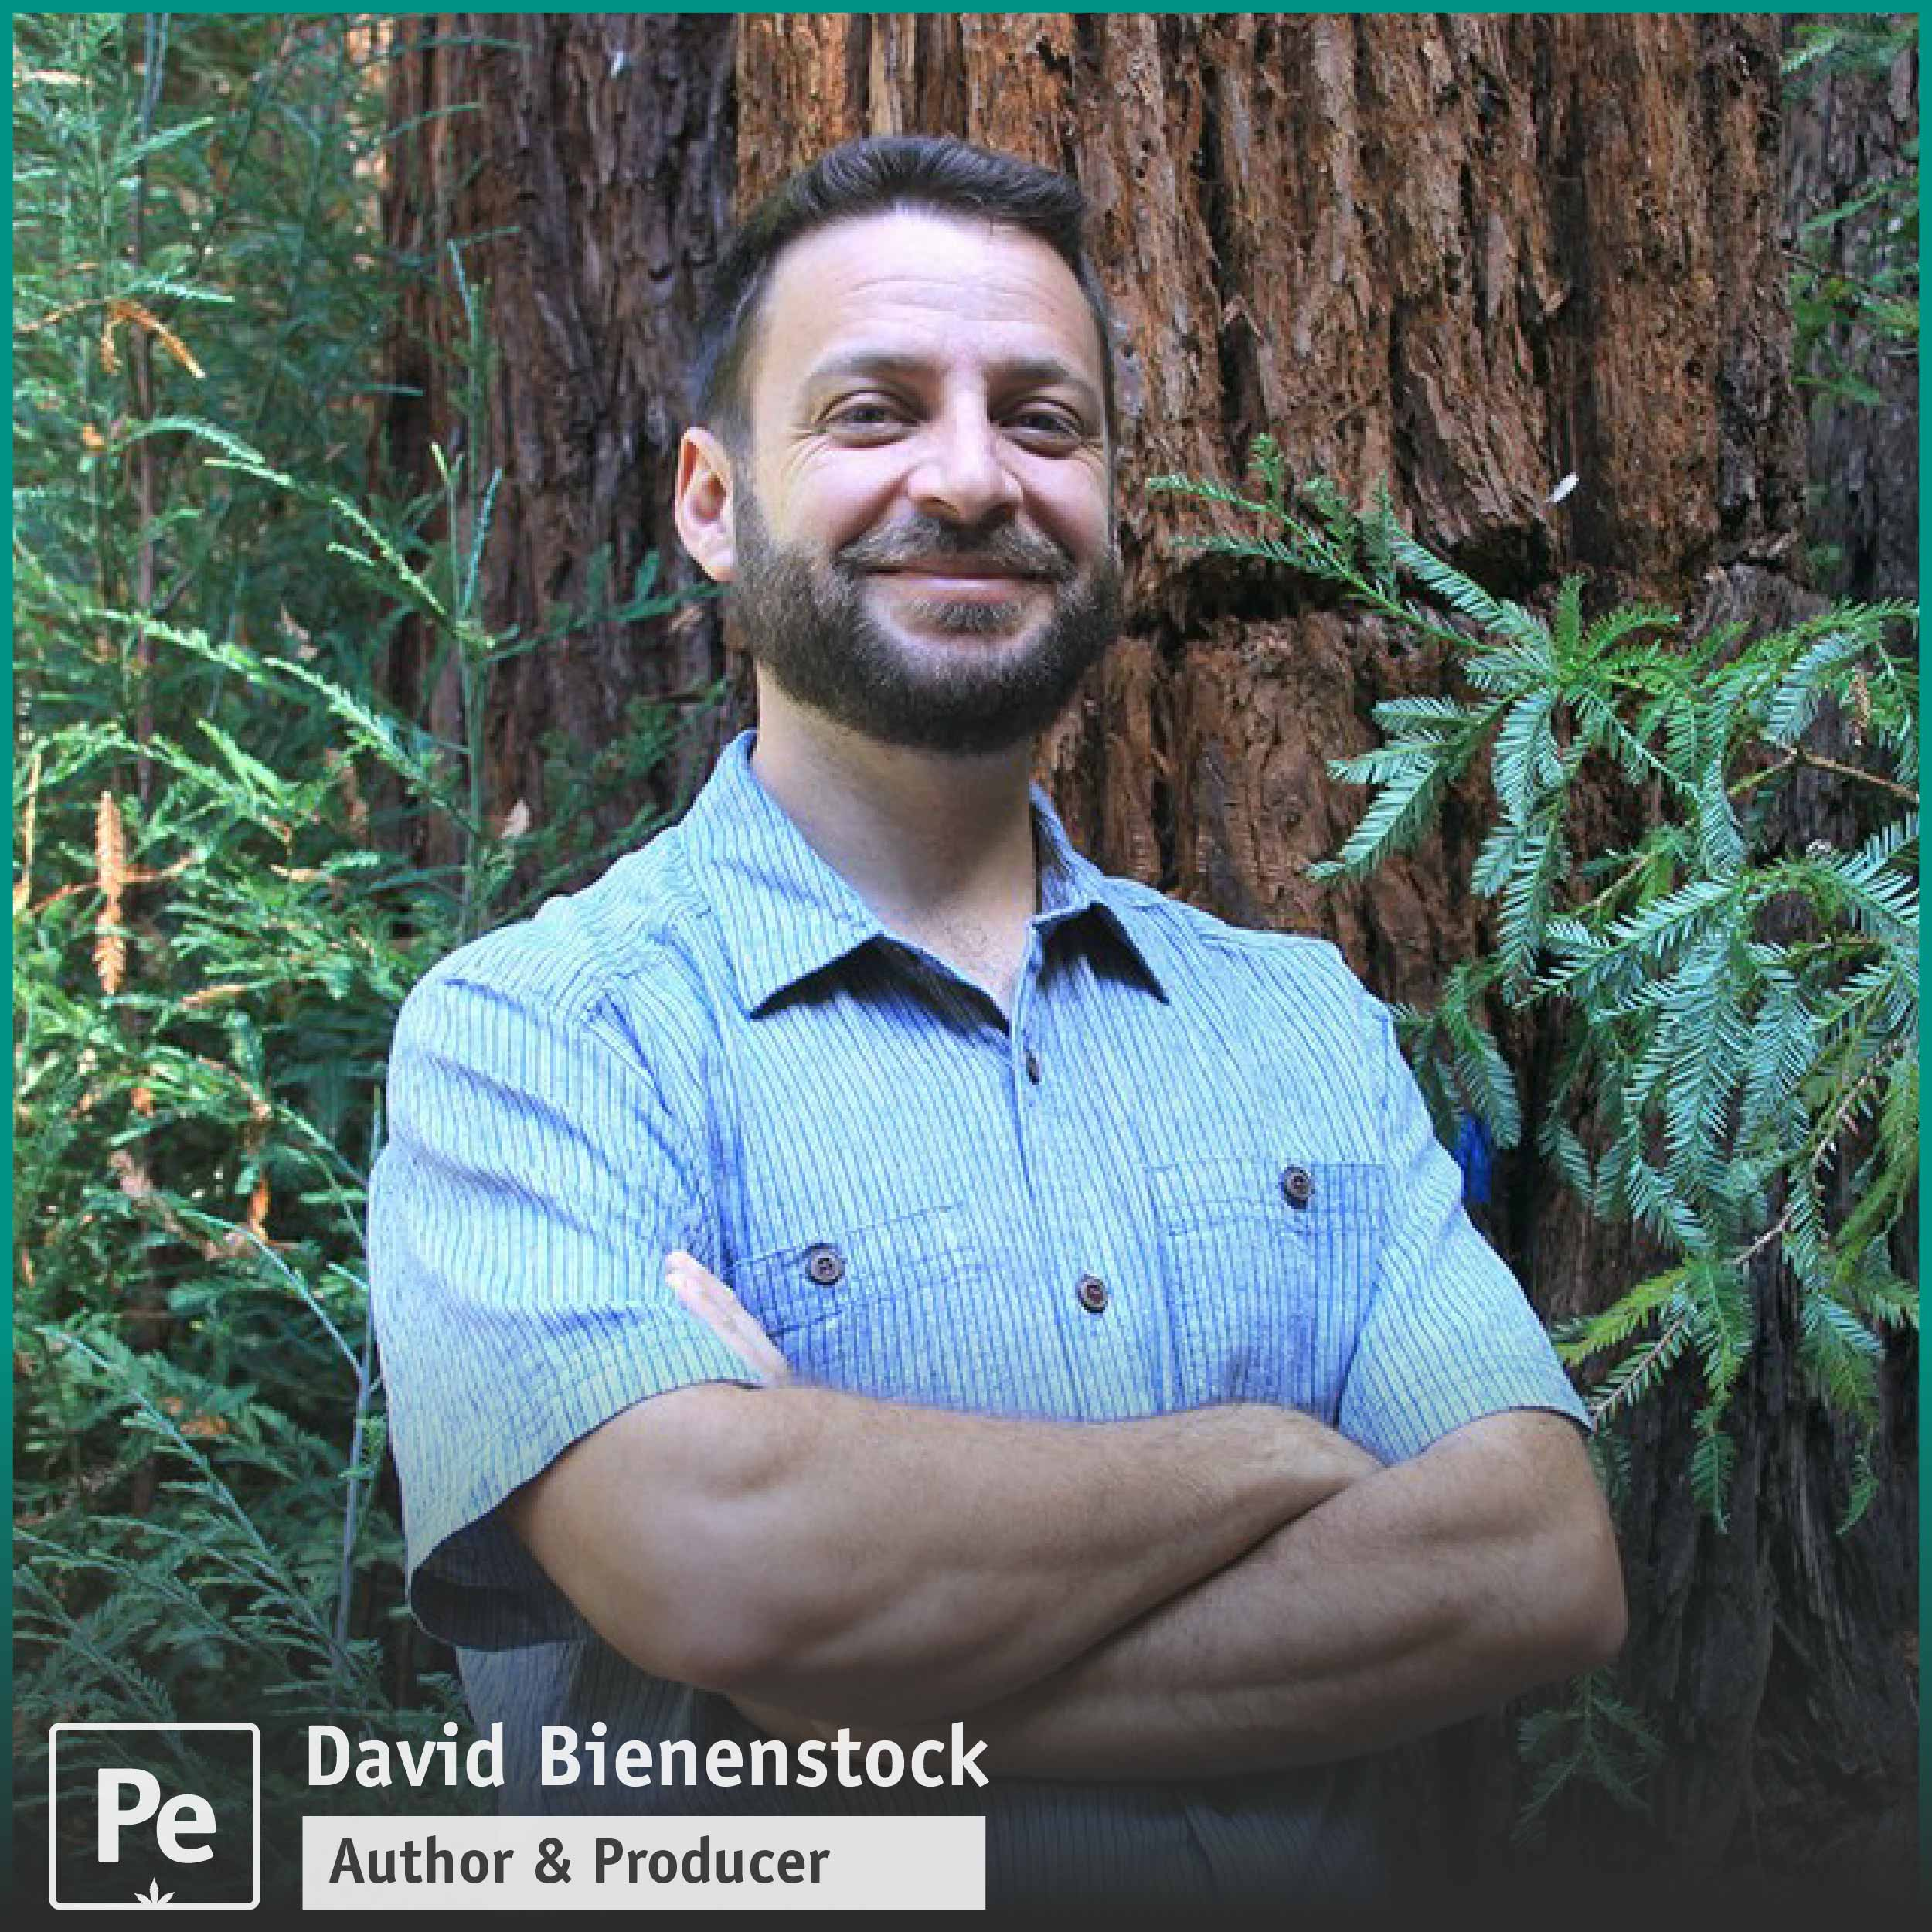 David Bienenstock author and producer of cannabis media and podcast host on Great Moments in Weed History